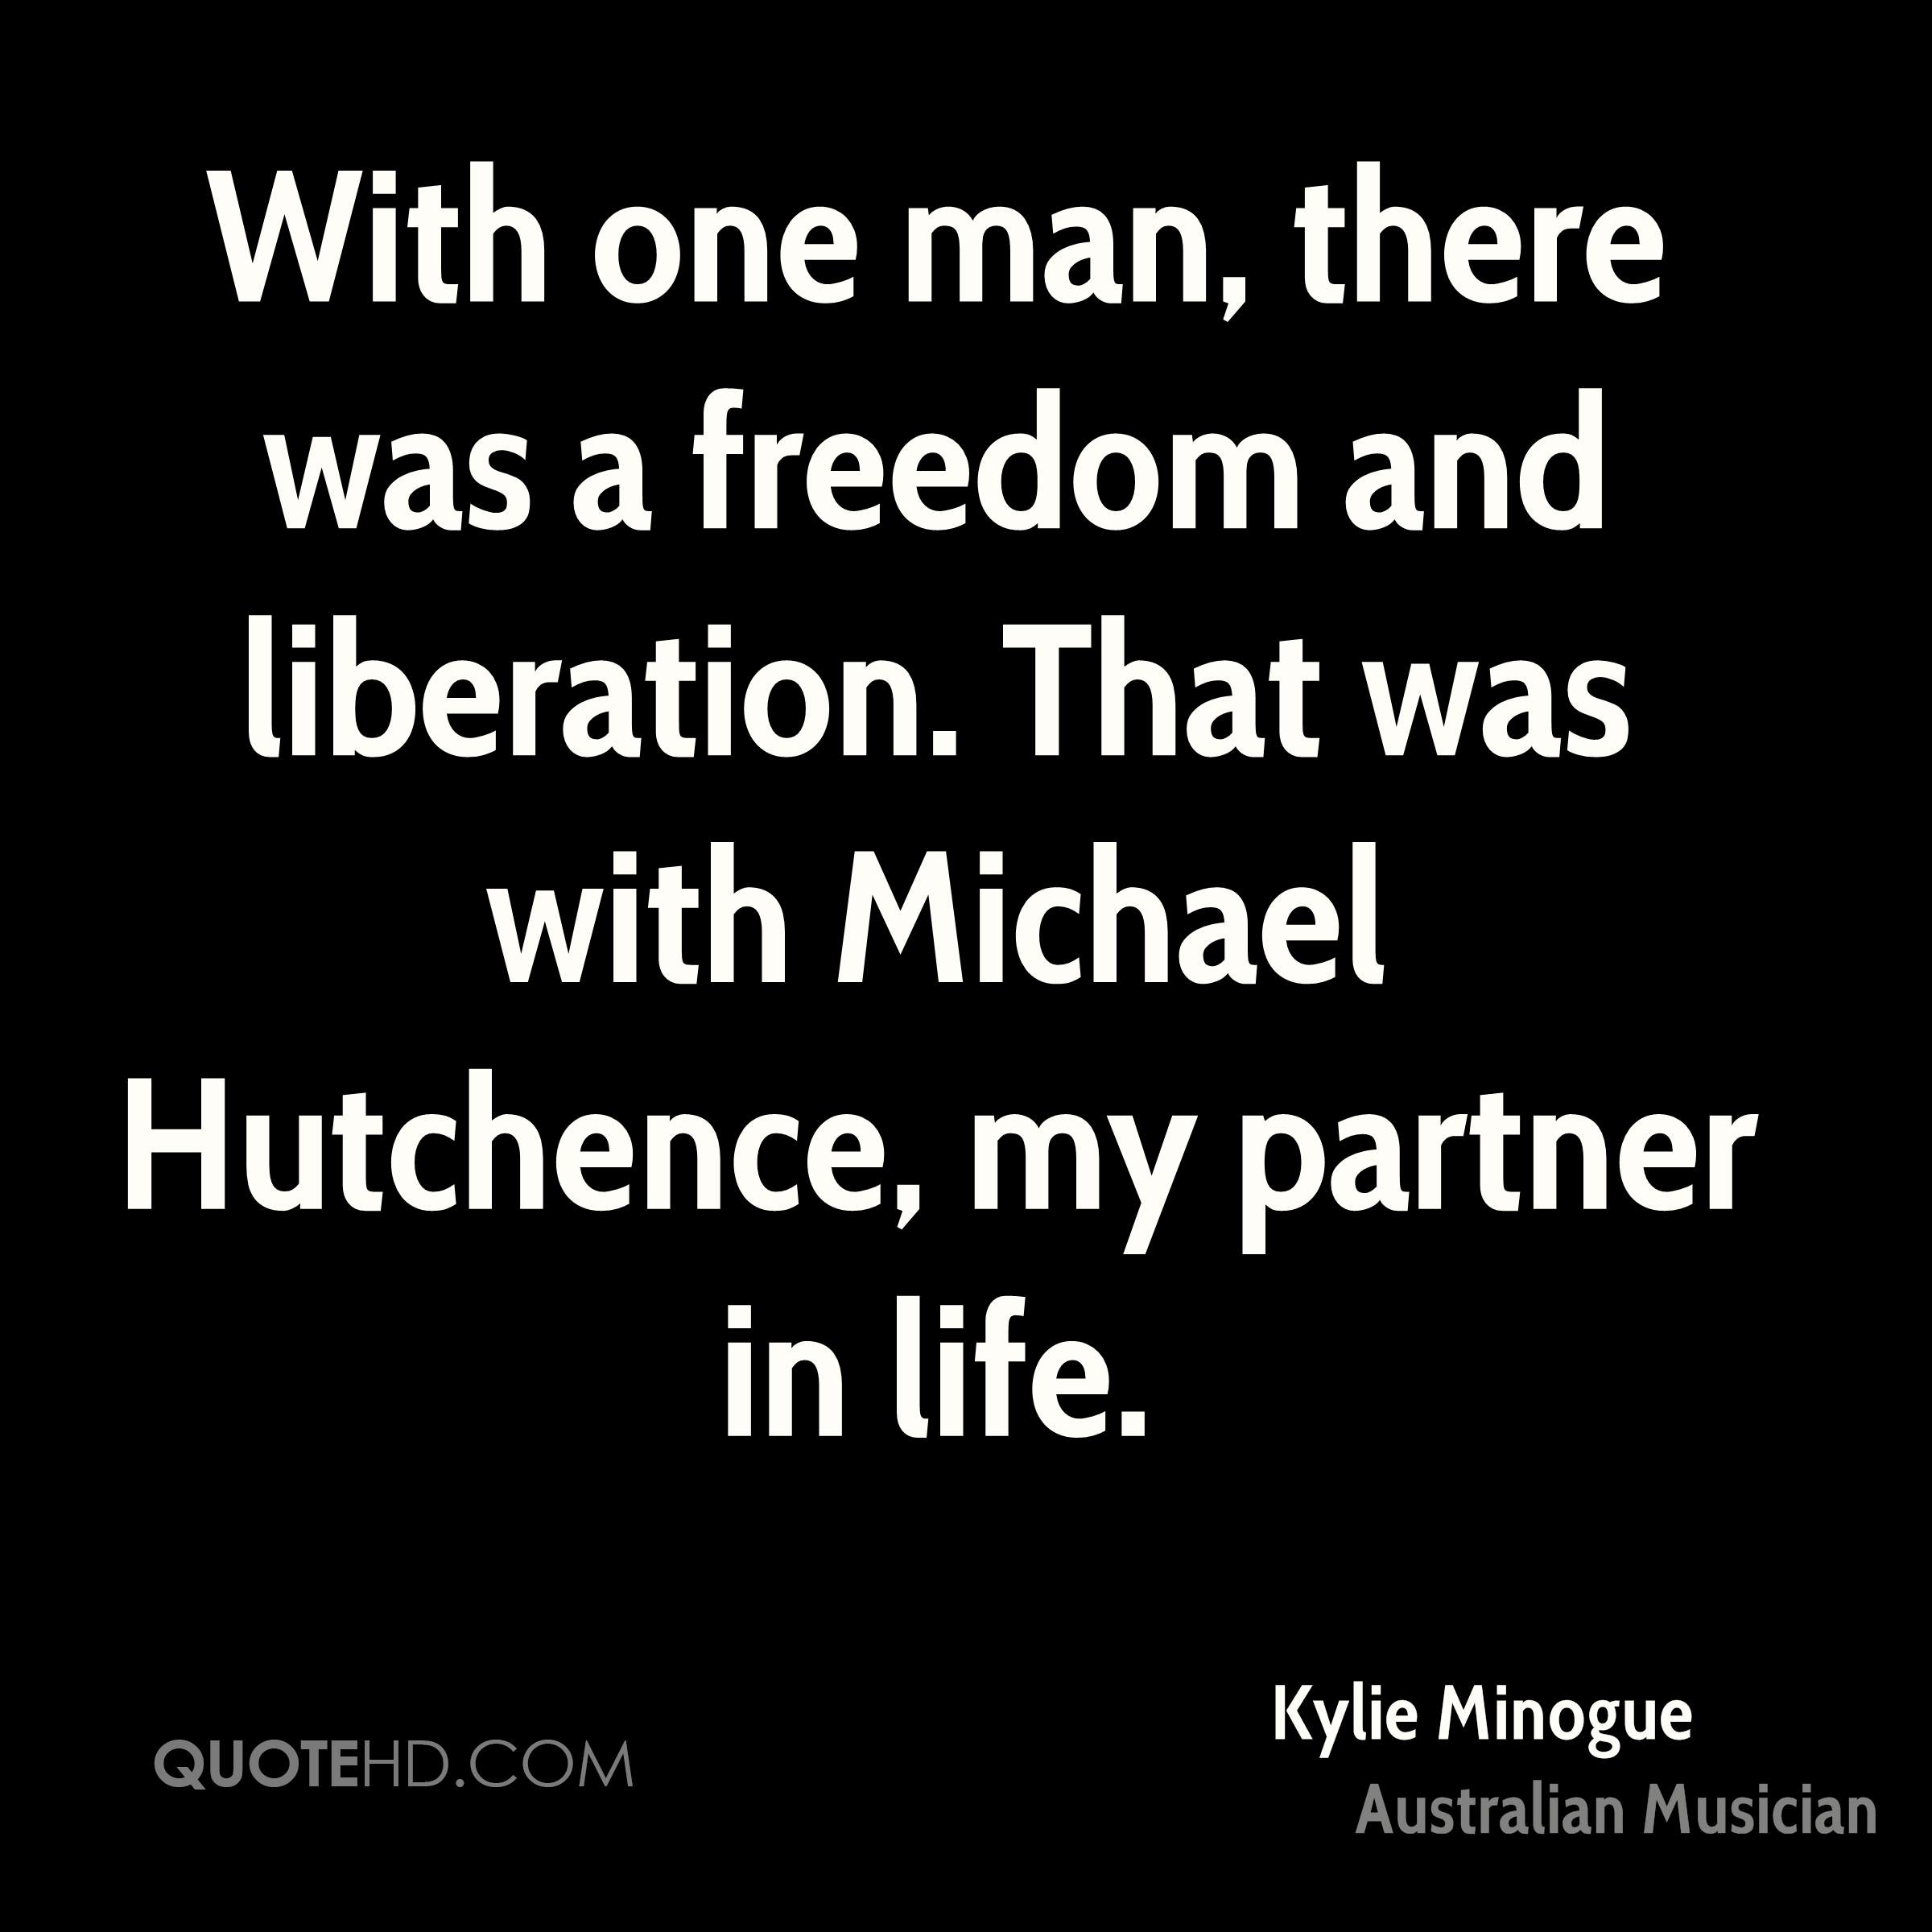 With one man, there was a freedom and liberation. That was with Michael Hutchence, my partner in life.